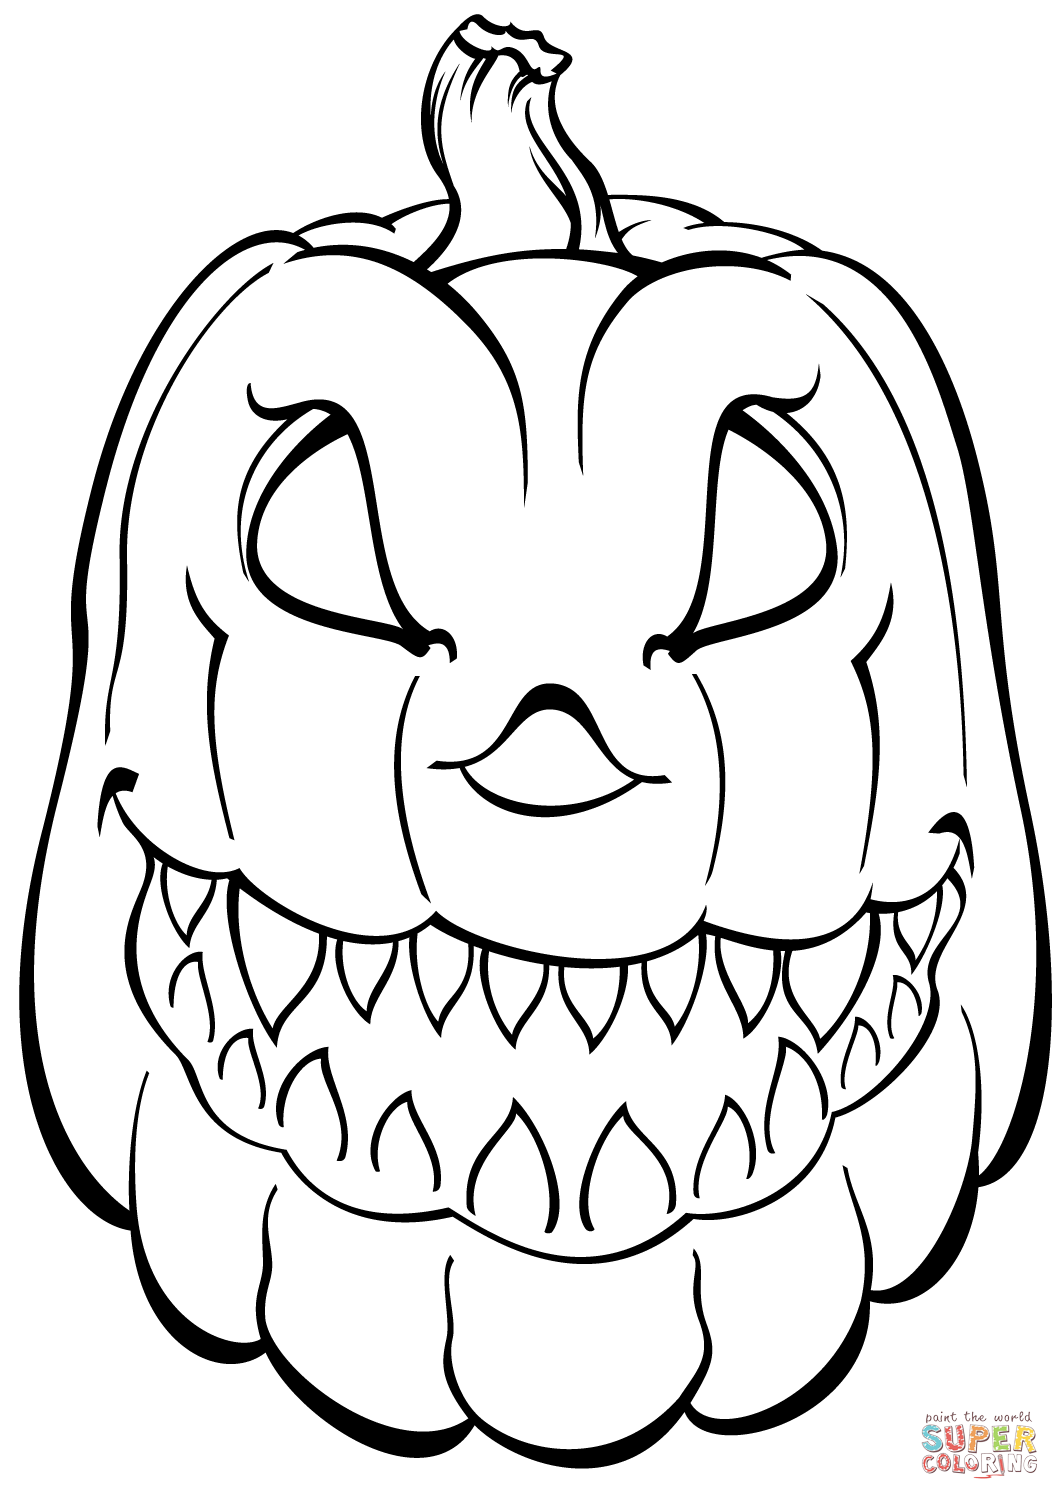 pumpkin colouring sheets creatively christy halloween craft 4 halloween coloring colouring pumpkin sheets